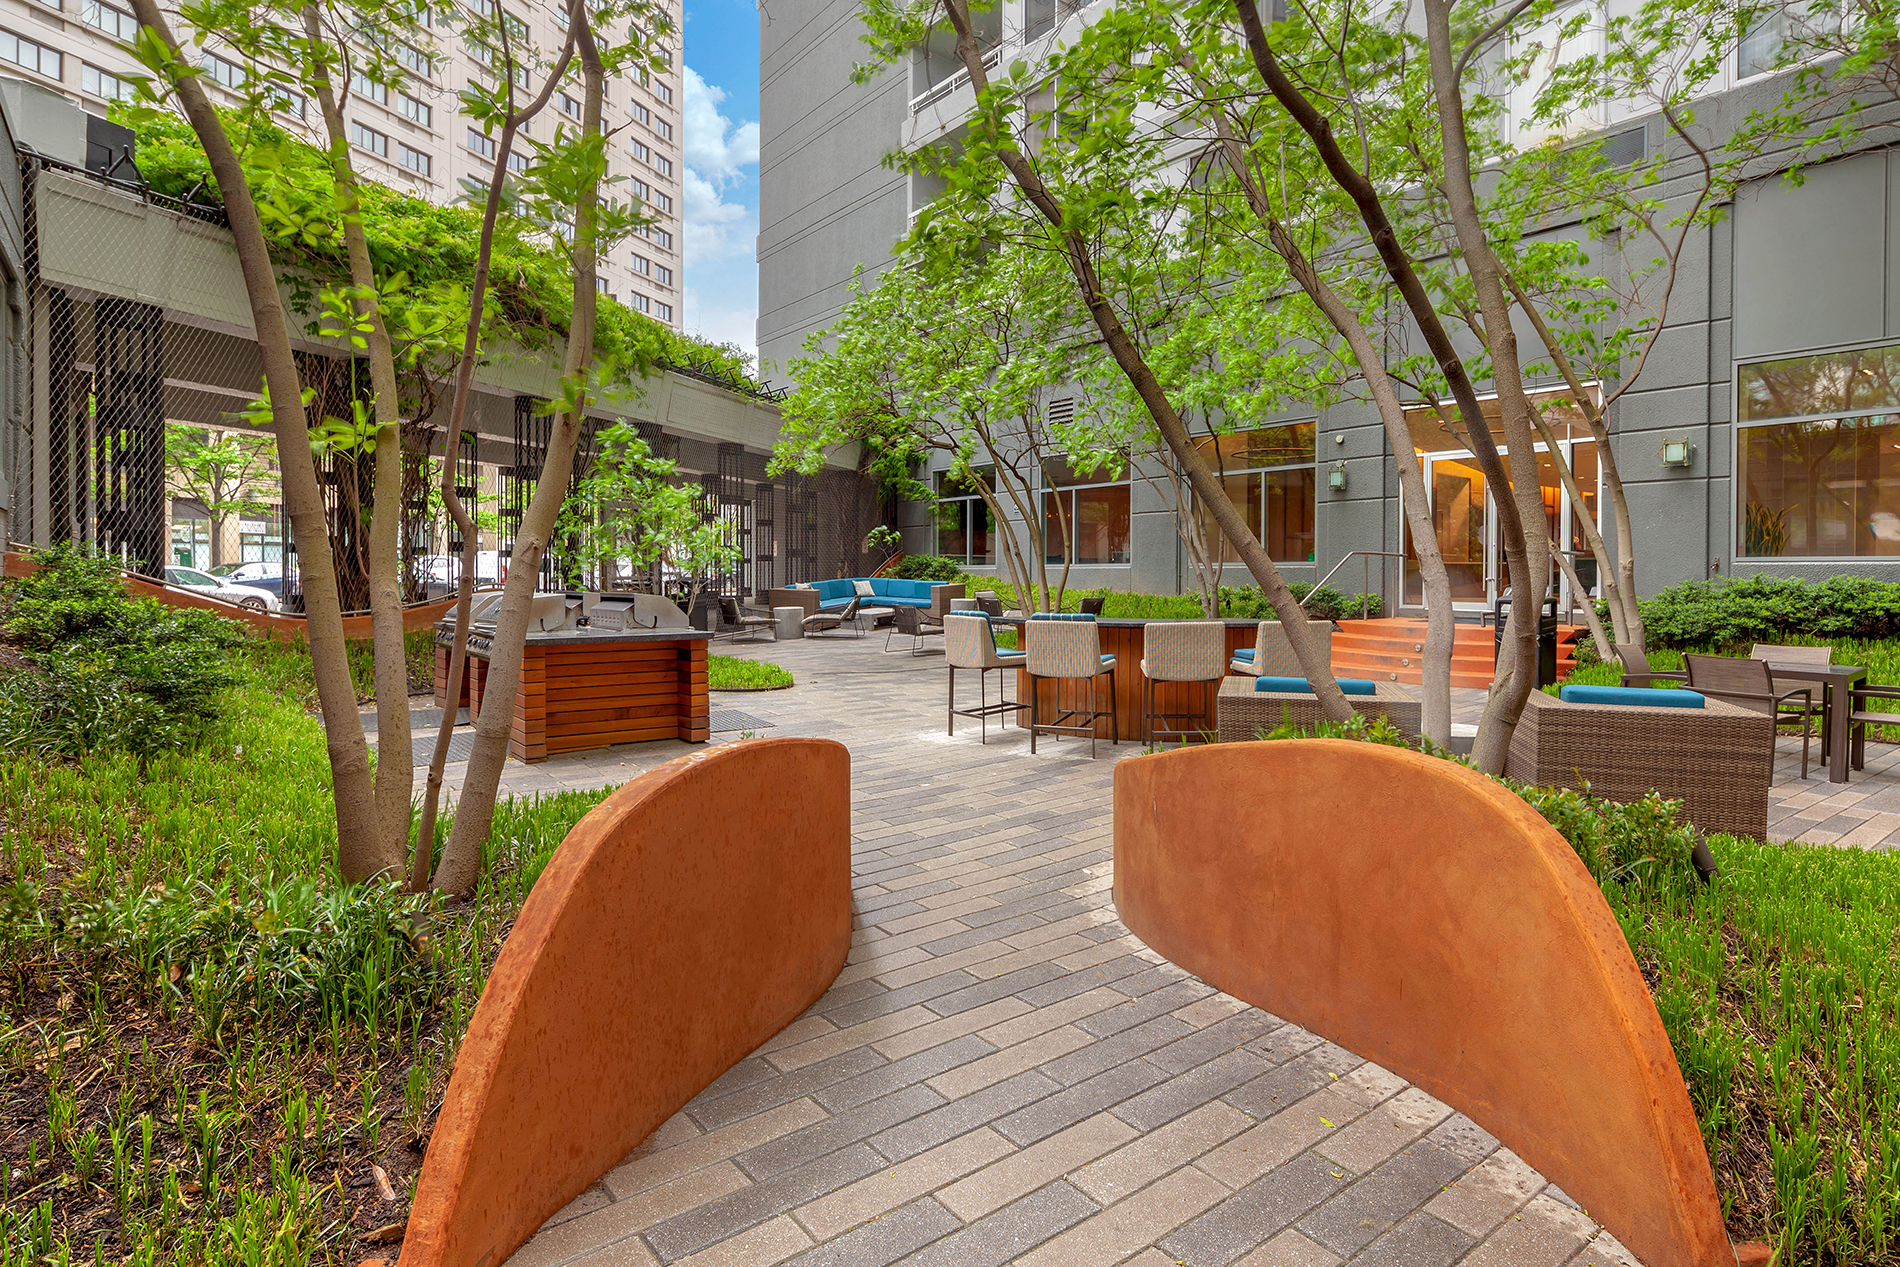 Outdoor courtyard of an apartment building